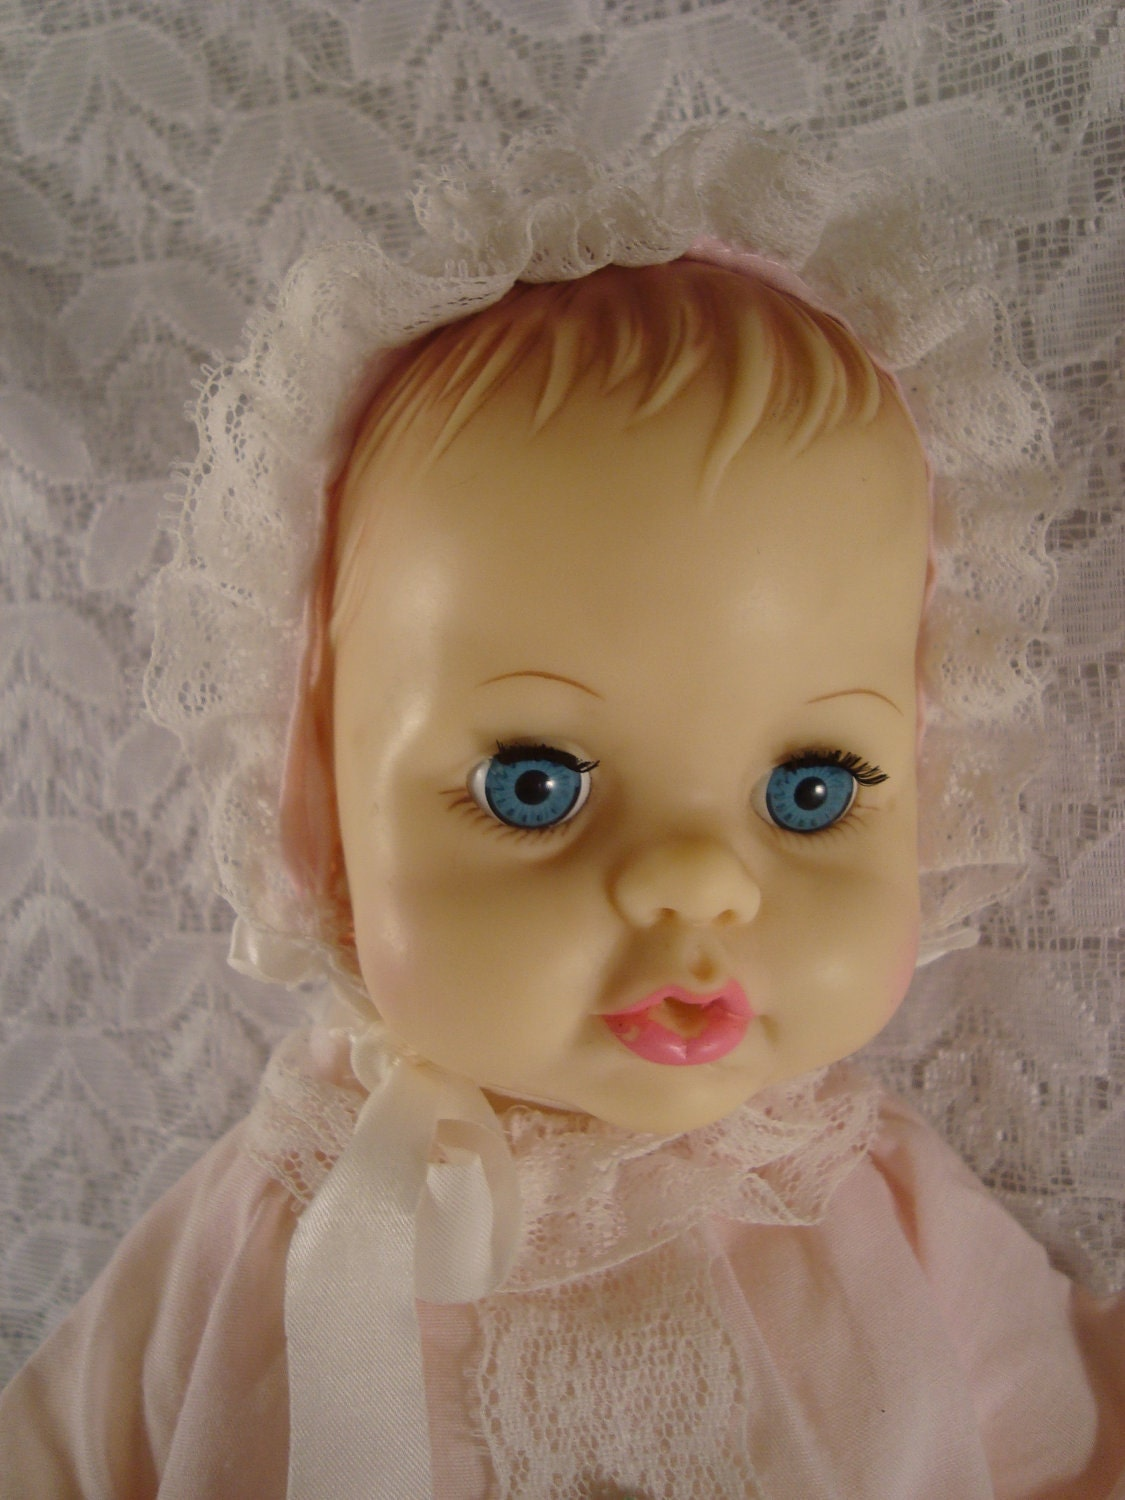 Baby Doll Ideal Toy Corp 1971 Vintage Plastic Girl Doll With